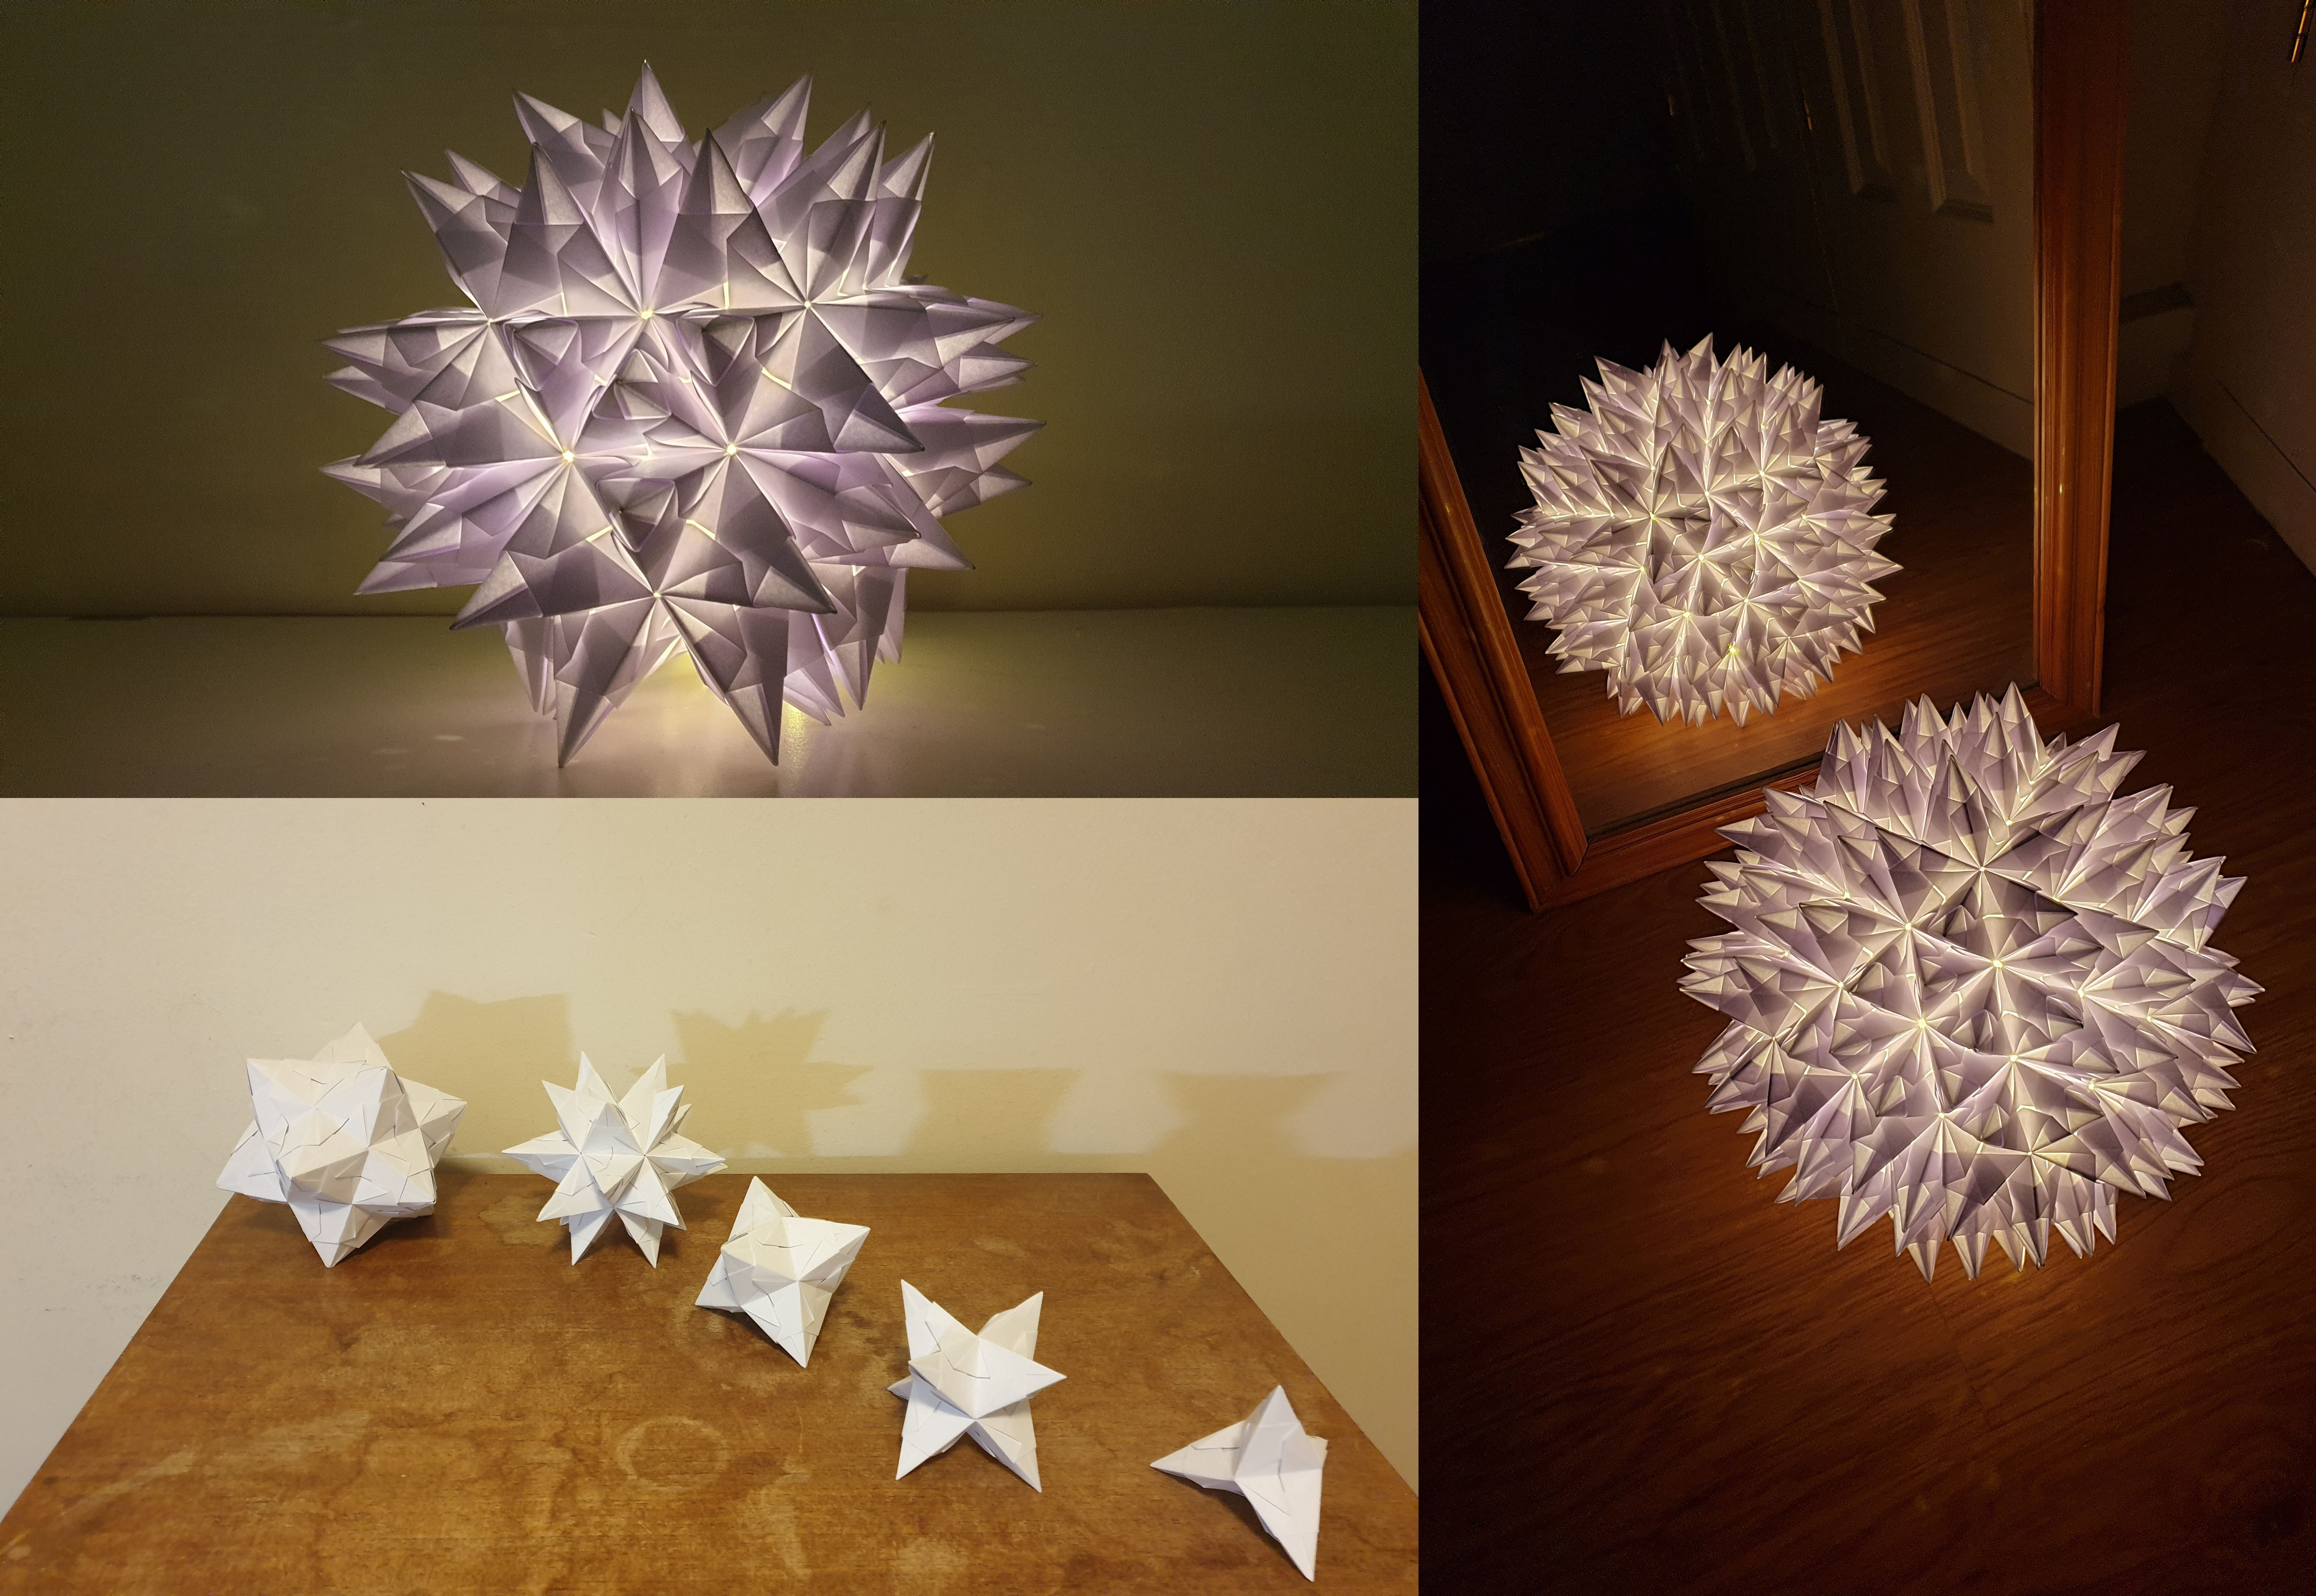 Image showing different models of a bascetta star starting from different platonic solid bases.